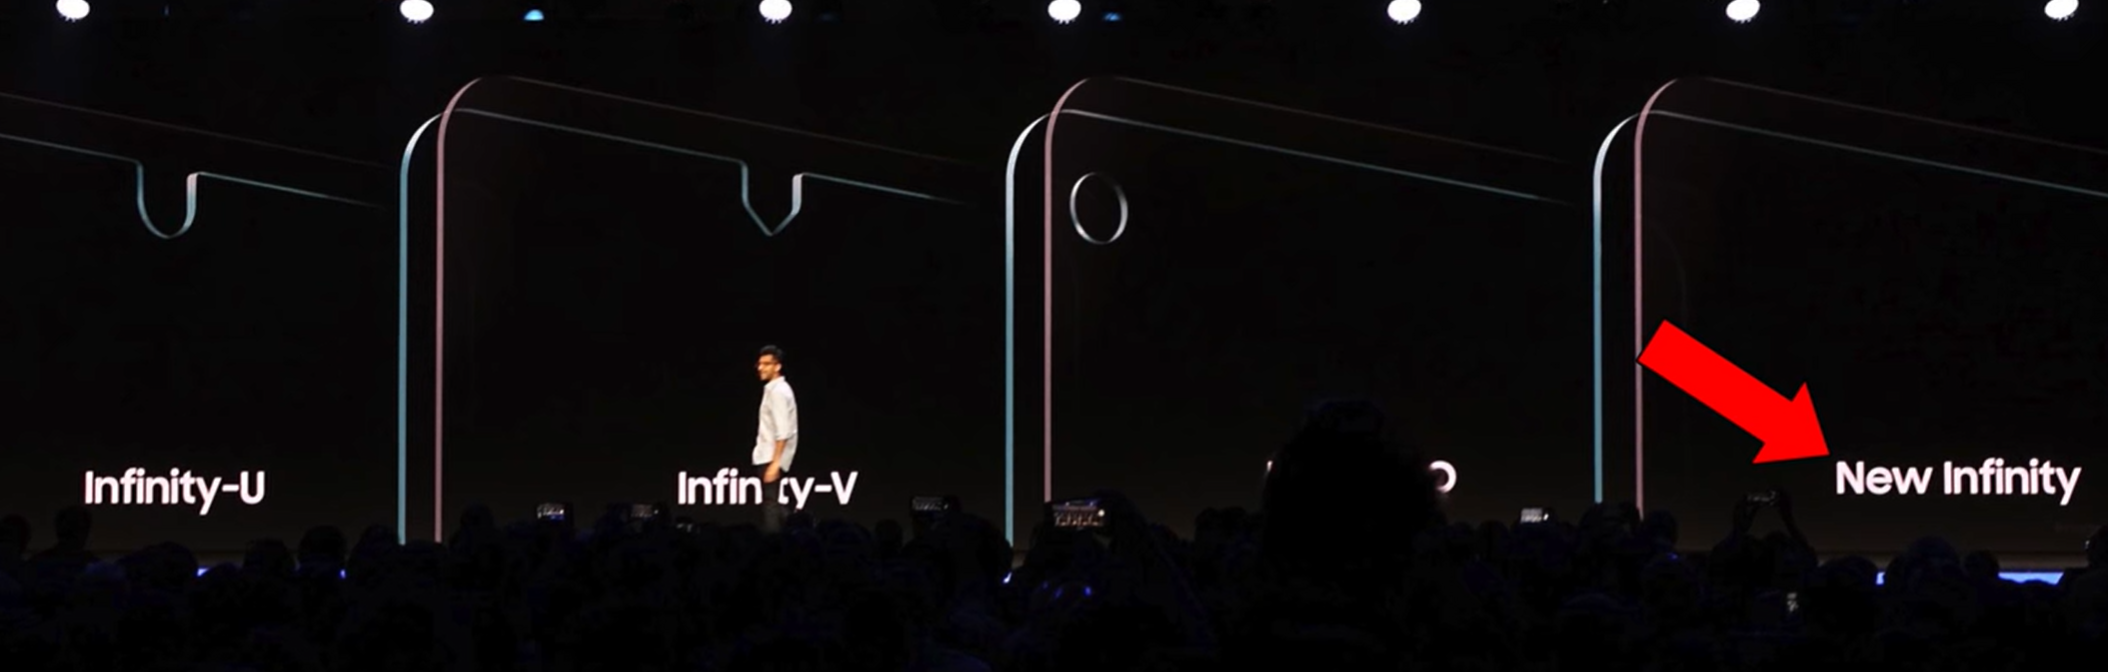 The Infinity Panel is what allows the 7 Pro to have a notch less display